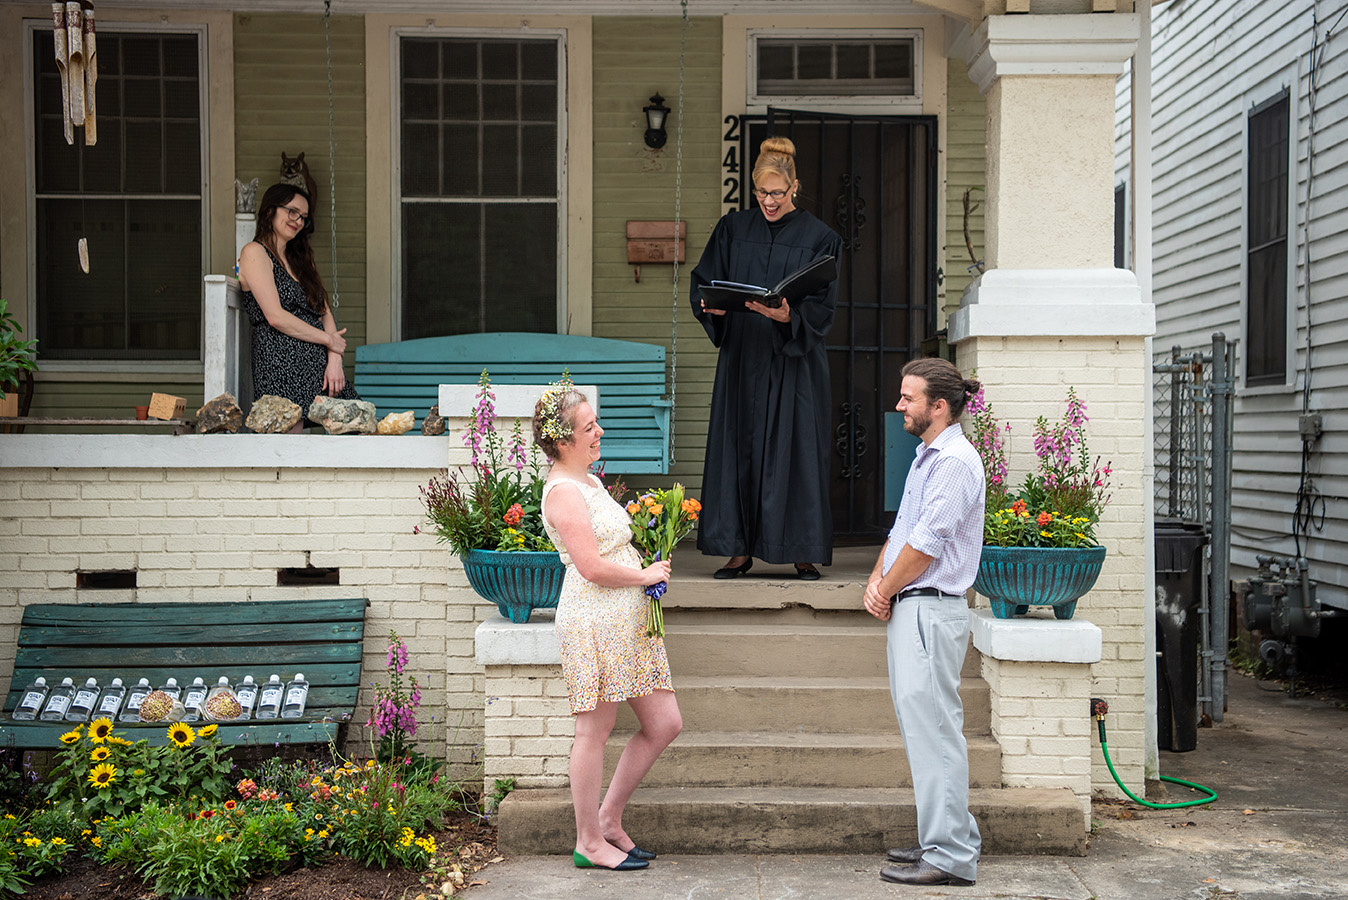 Elizabeth and Greg's ceremony took place on the front porch of their house in Treme with Diane Lundeen officiating.